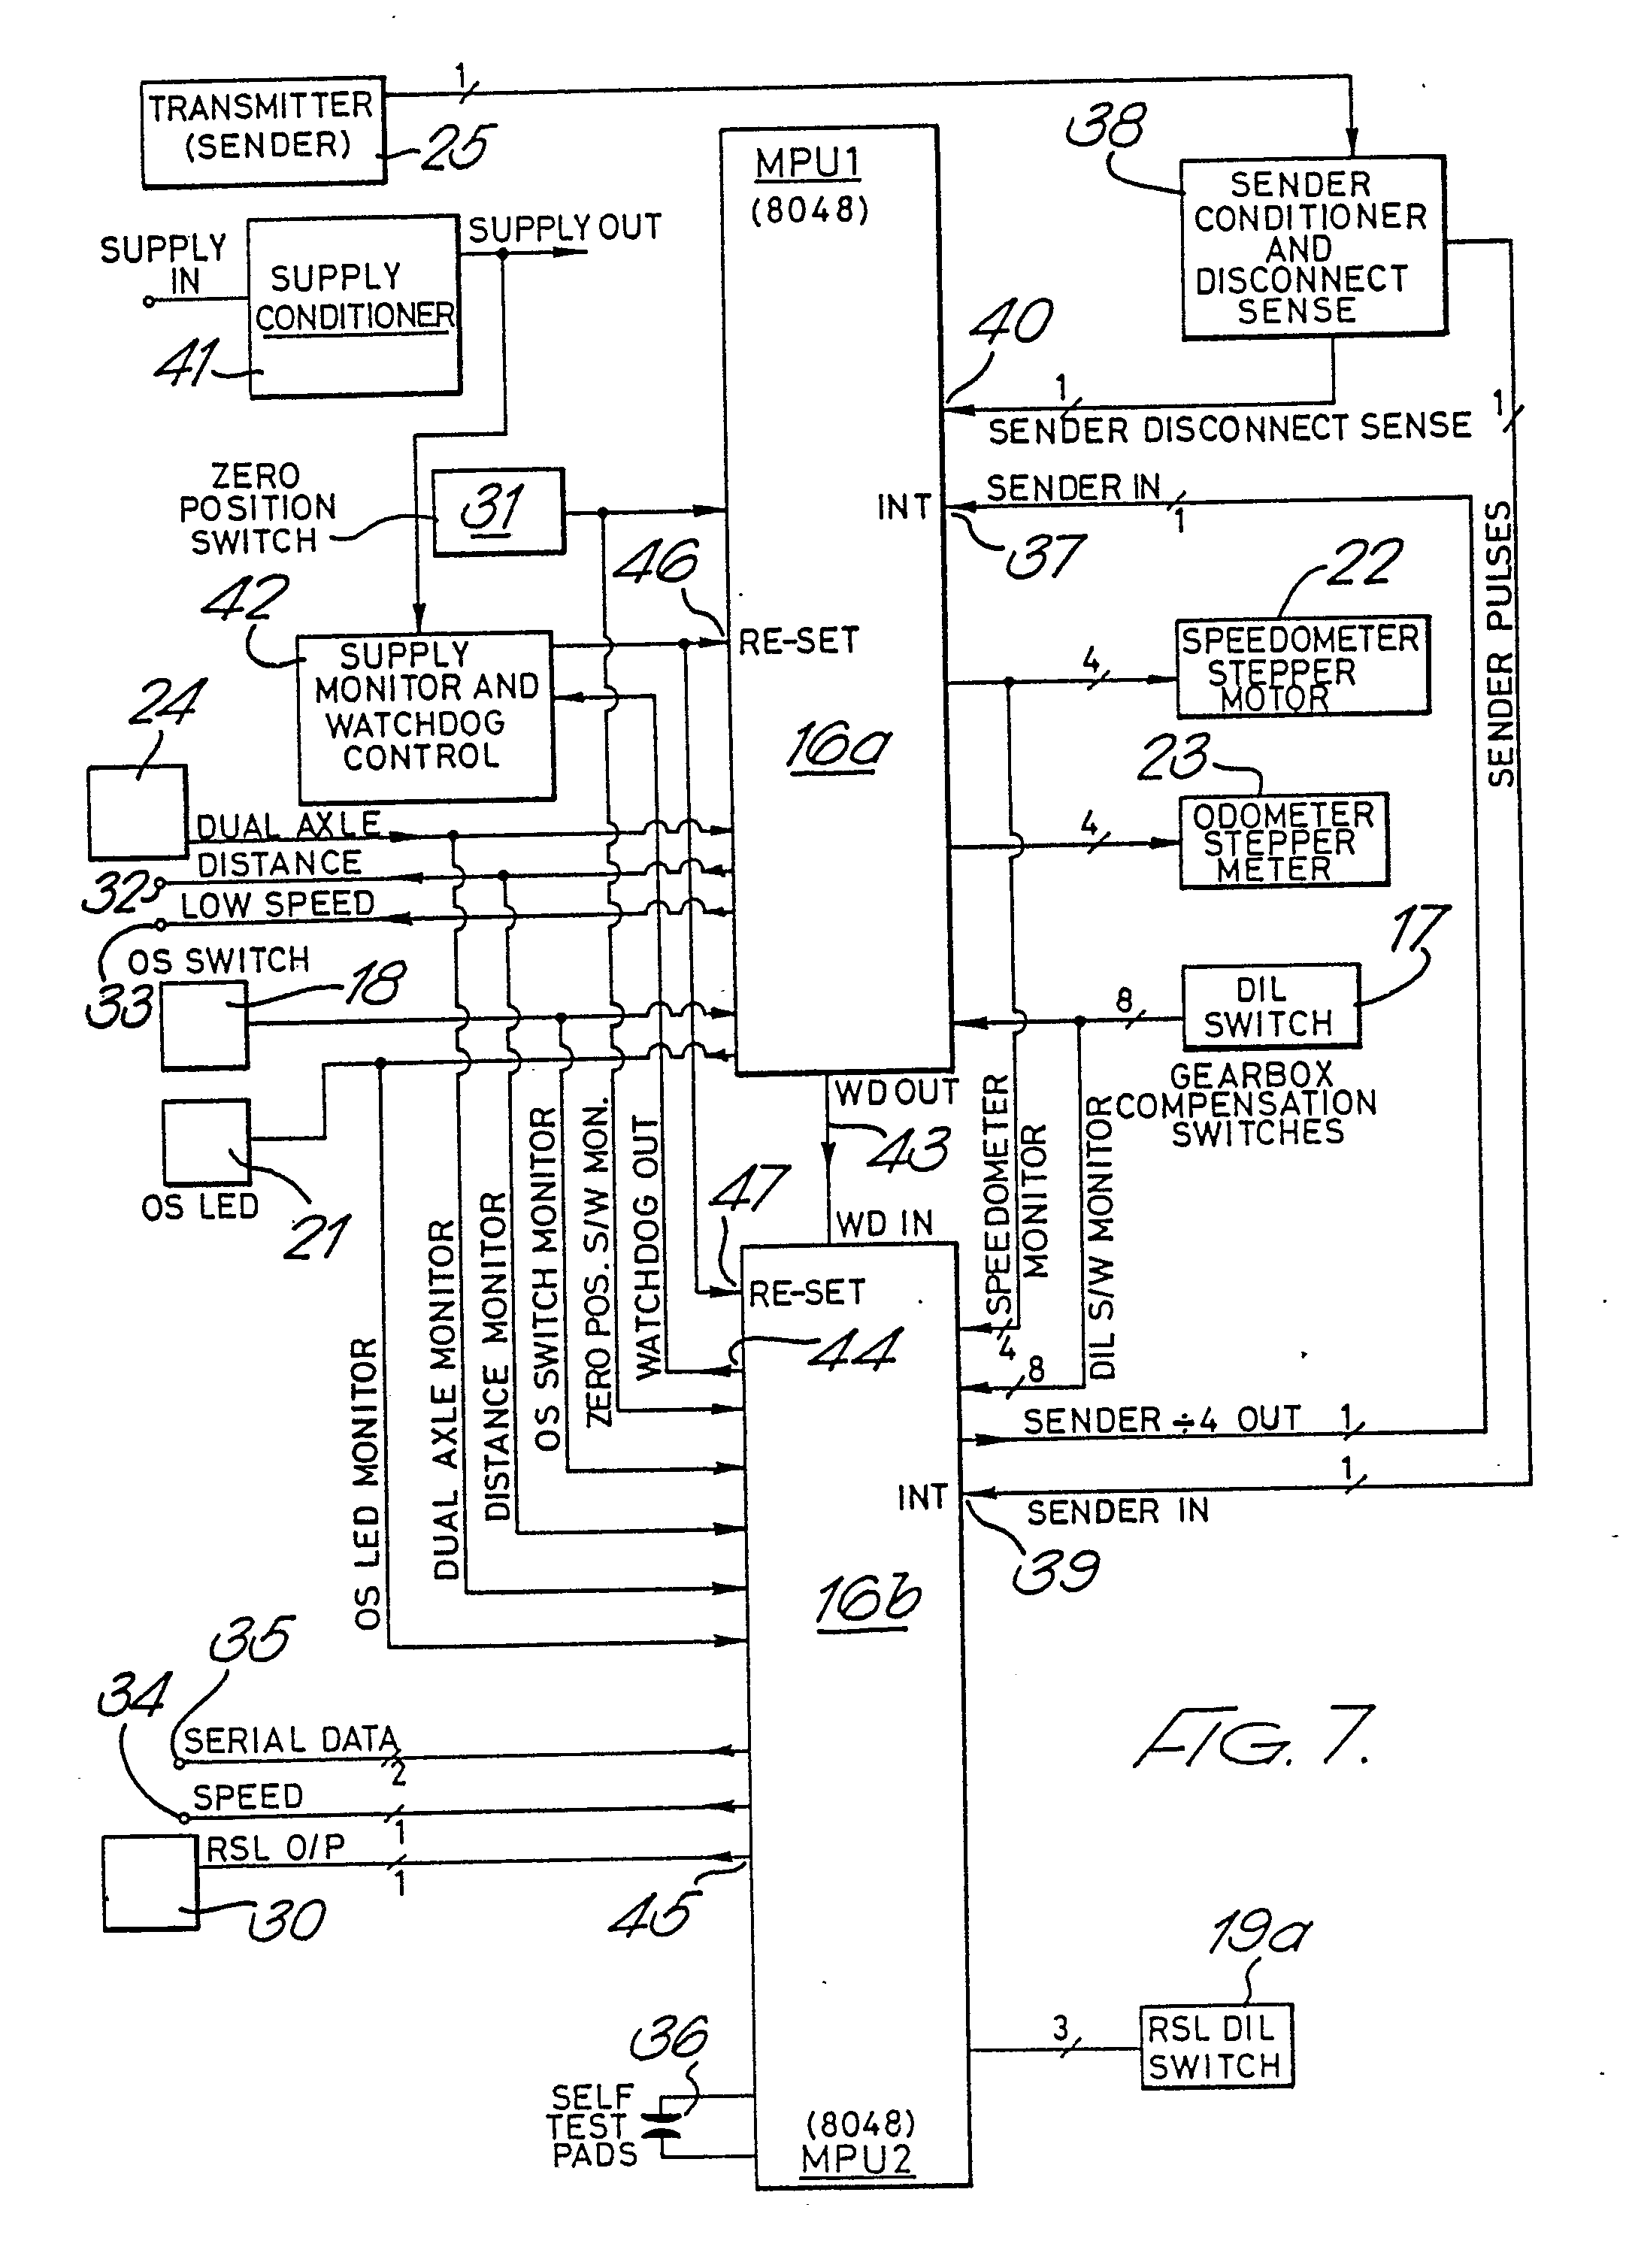 imgf0005 vdo wiring diagram auto meter tach wiring \u2022 wiring diagrams j Basic Electrical Wiring Diagrams at bayanpartner.co